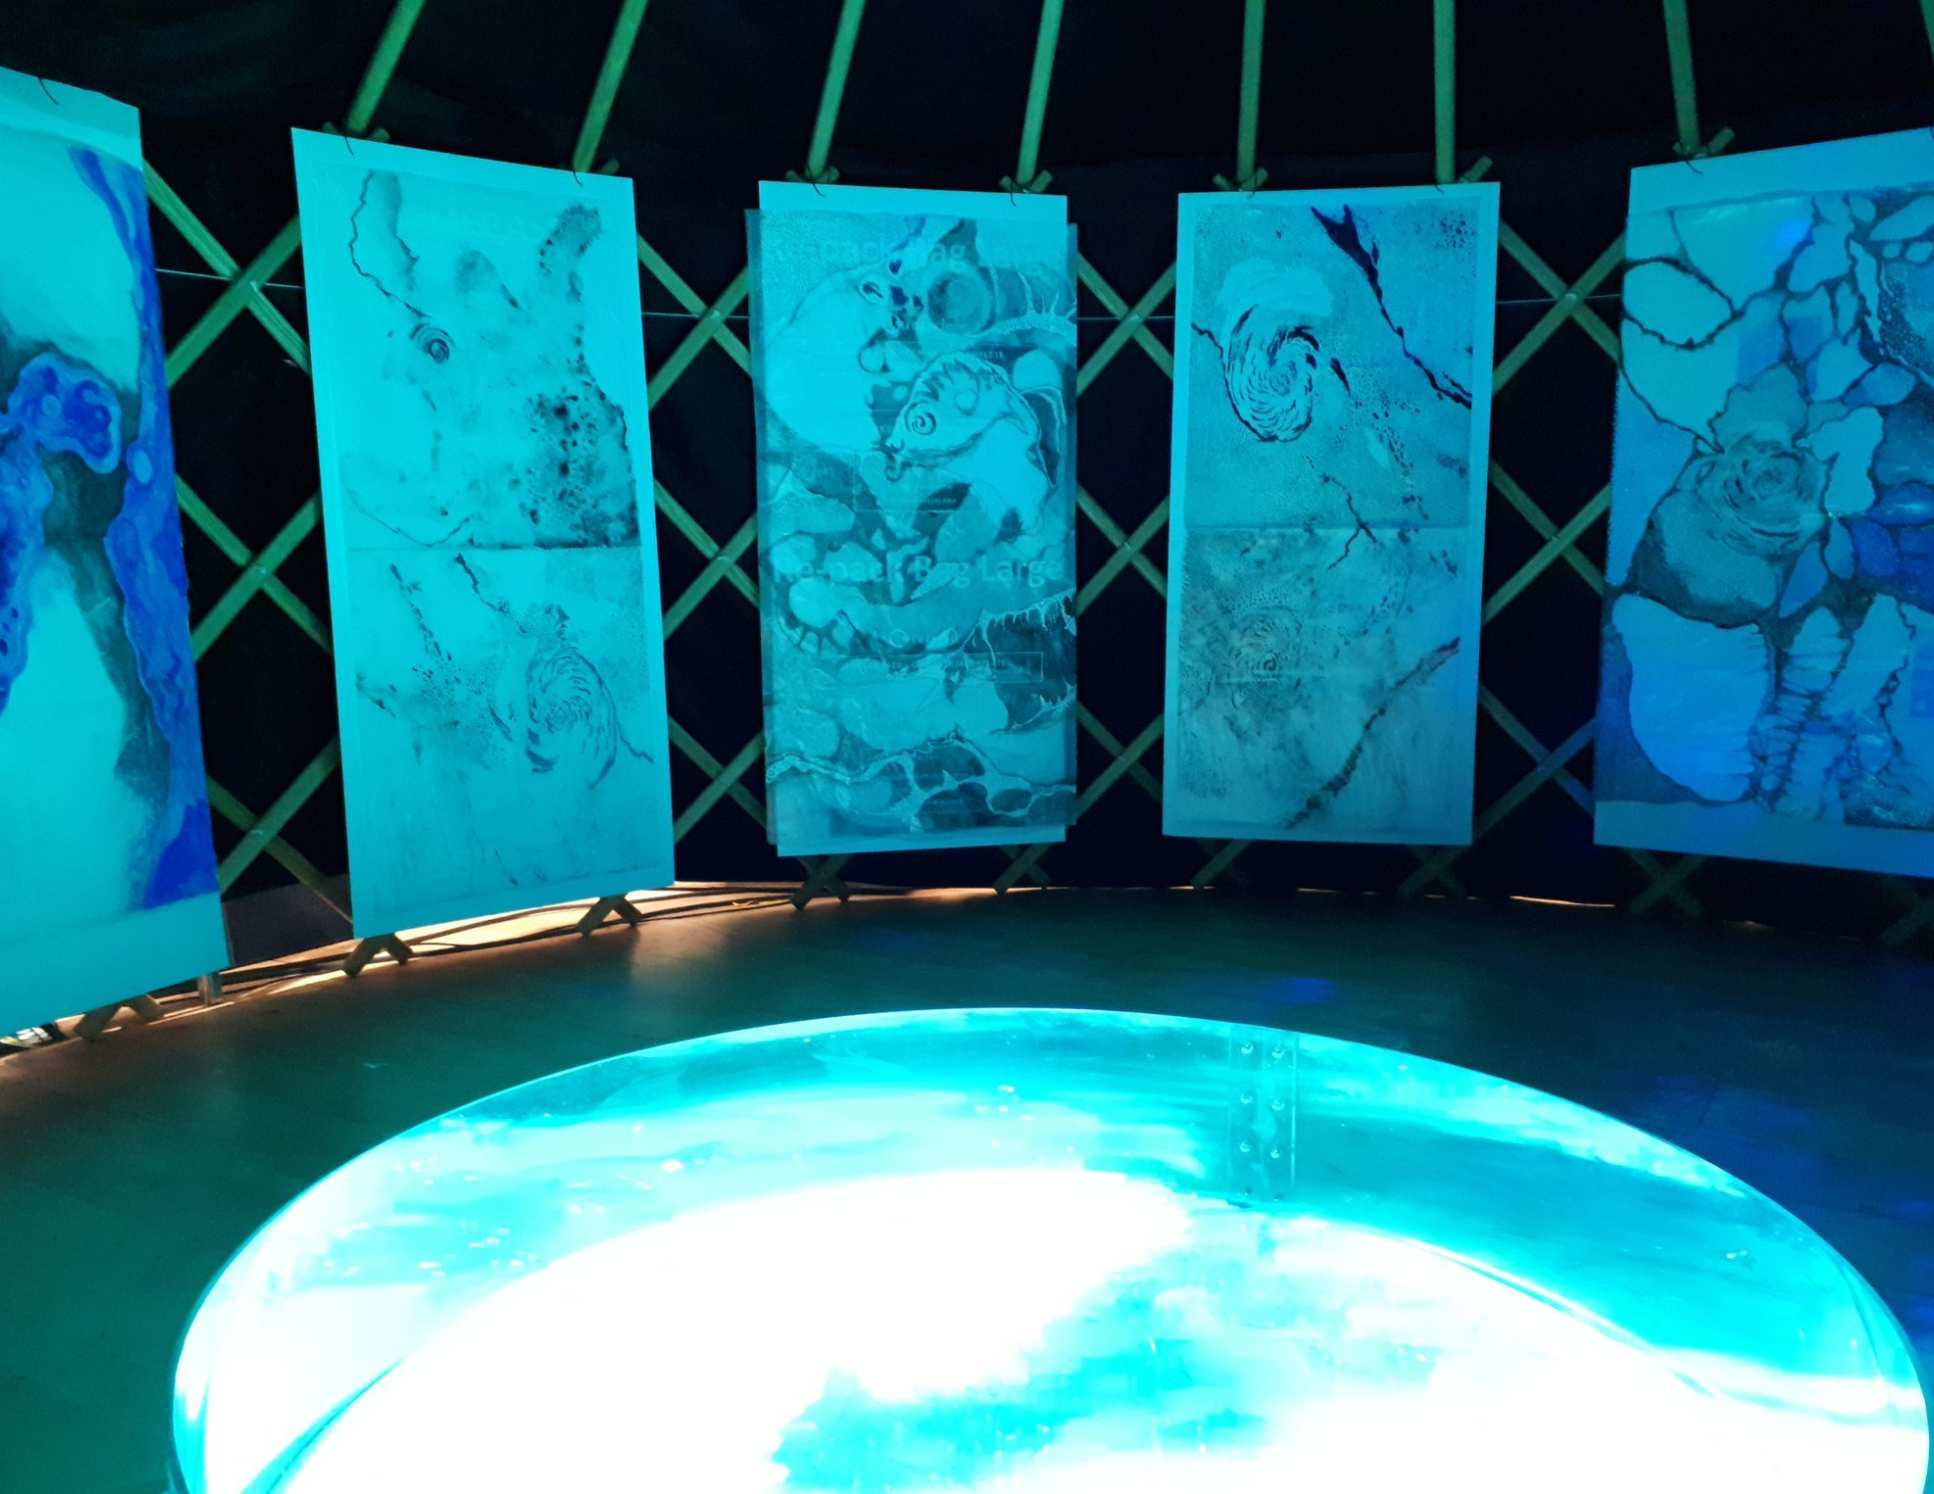 Five abstract watercolour paintings hang above a small pool of water, both are illuminated with blue light